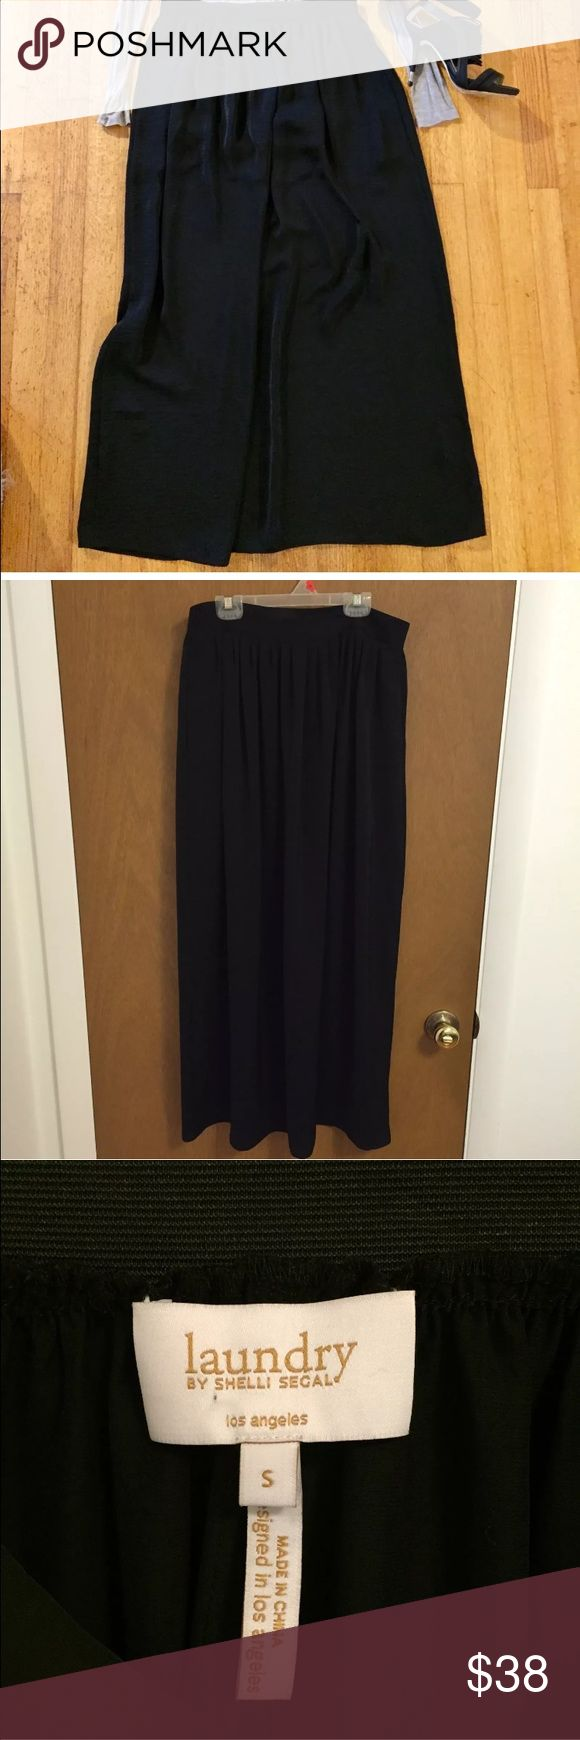 Laundry by Shelli Segal black maxi skirt S Gorgeous black maxi skirt from Nordstrom-- Laundry by shelli segal. Excellent condition. Length measures 39 inches. Waist measures 15 inches across the front while lying flat. Laundry by Shelli Segal Skirts Maxi